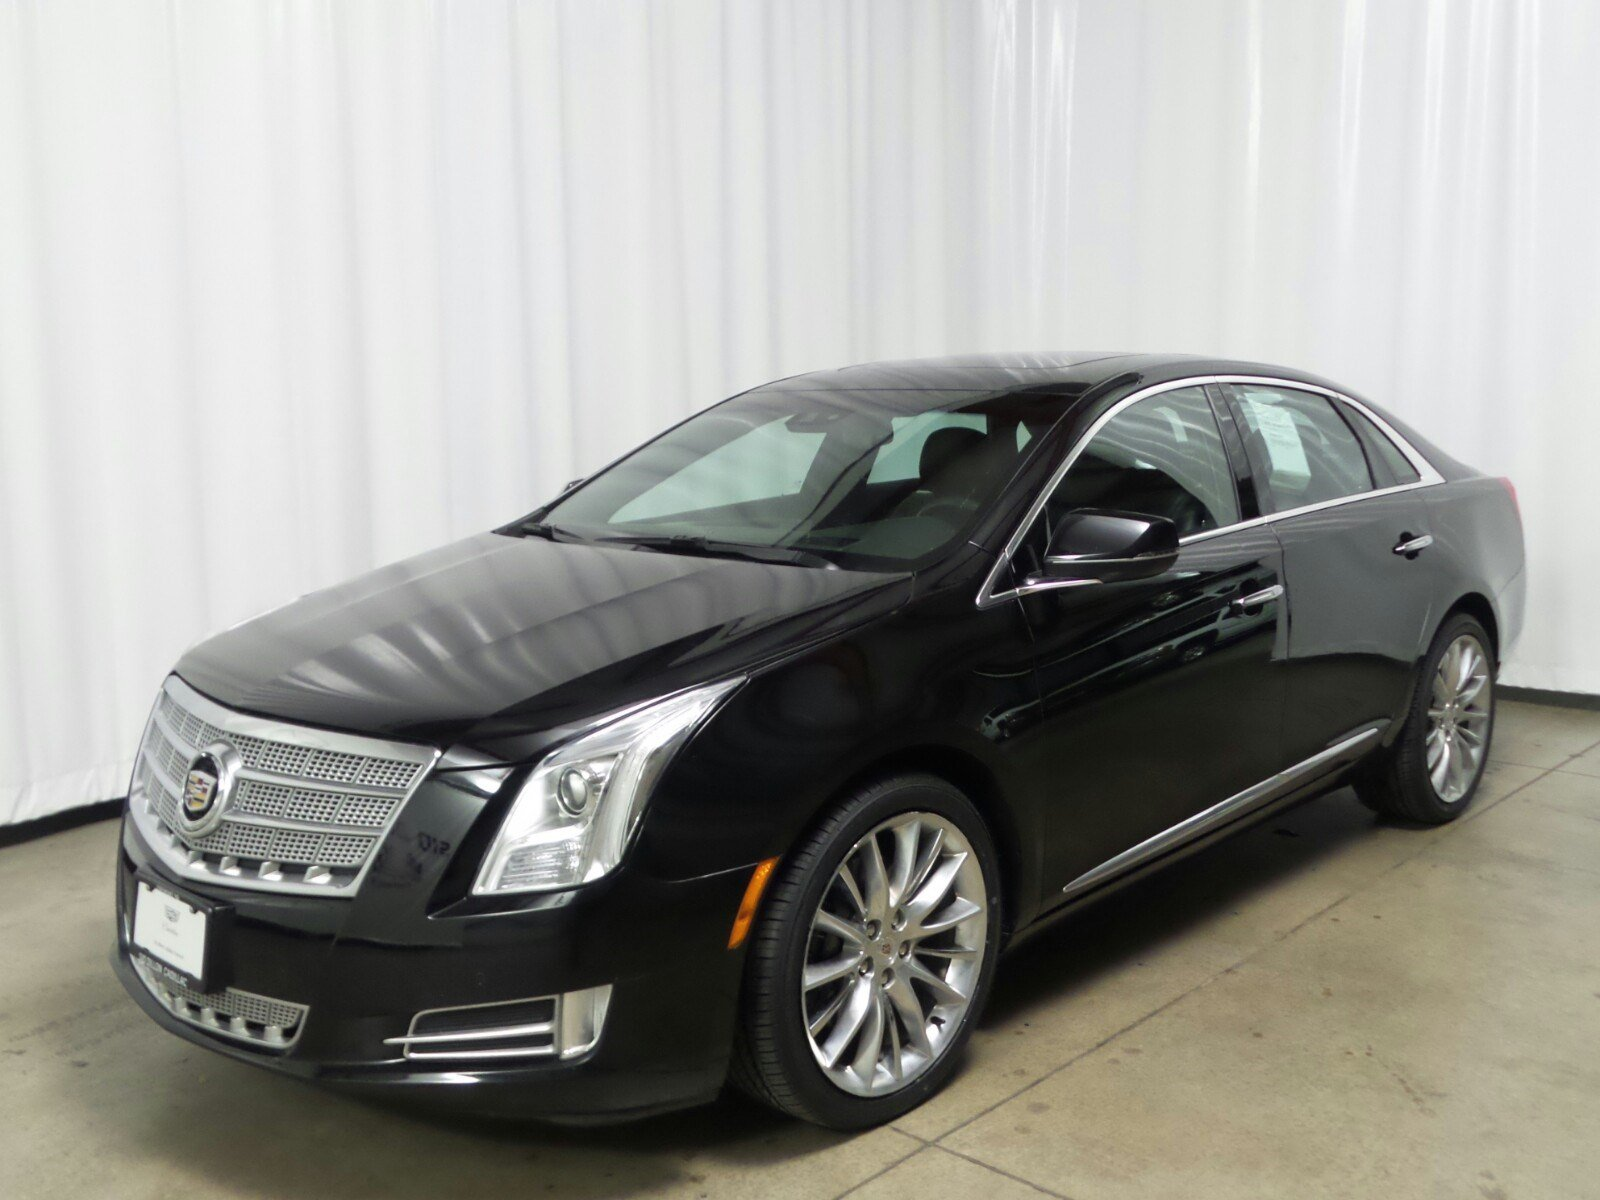 pre owned 2013 cadillac xts platinum 4 door sedan in fremont rh siddillon com 2013 cadillac xts owners manual 2013 cadillac xts owners manual